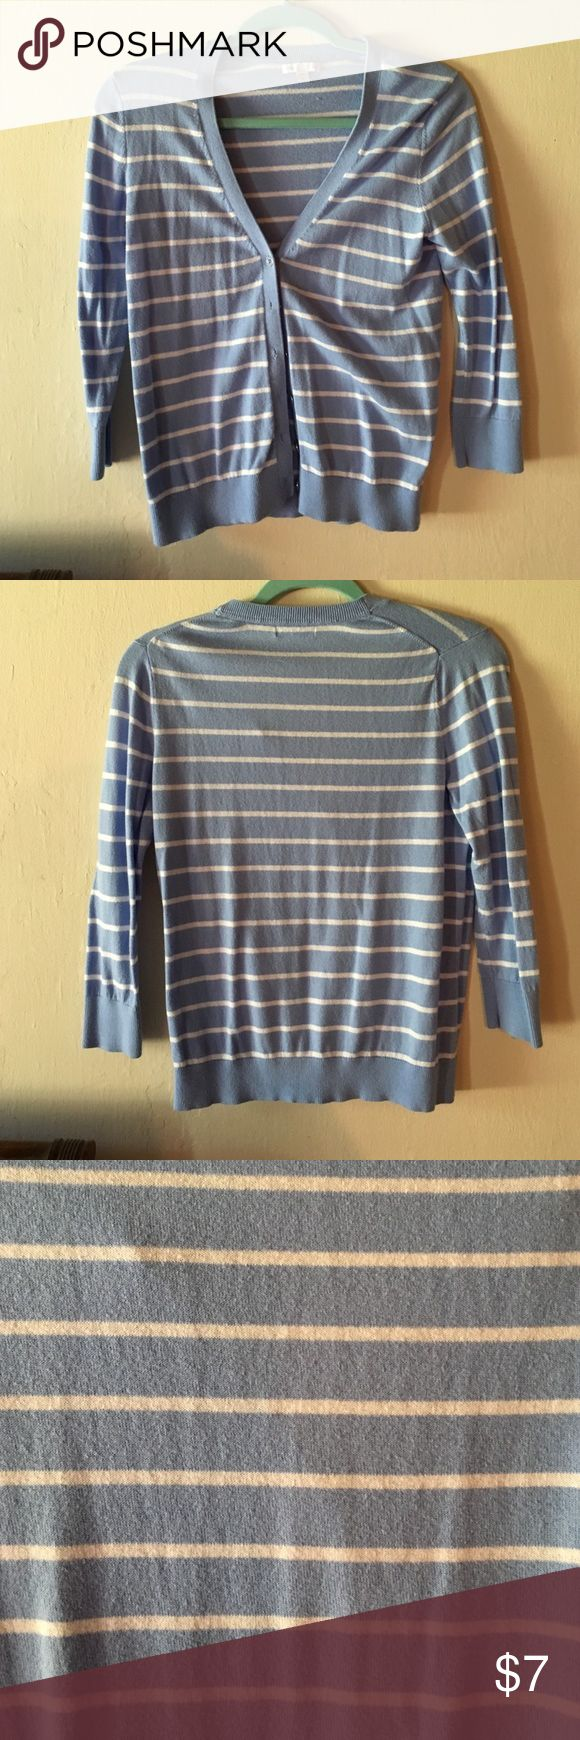 Blue and white Striped Cardigan Blue and white cardigan, soft material. GAP Sweaters Cardigans